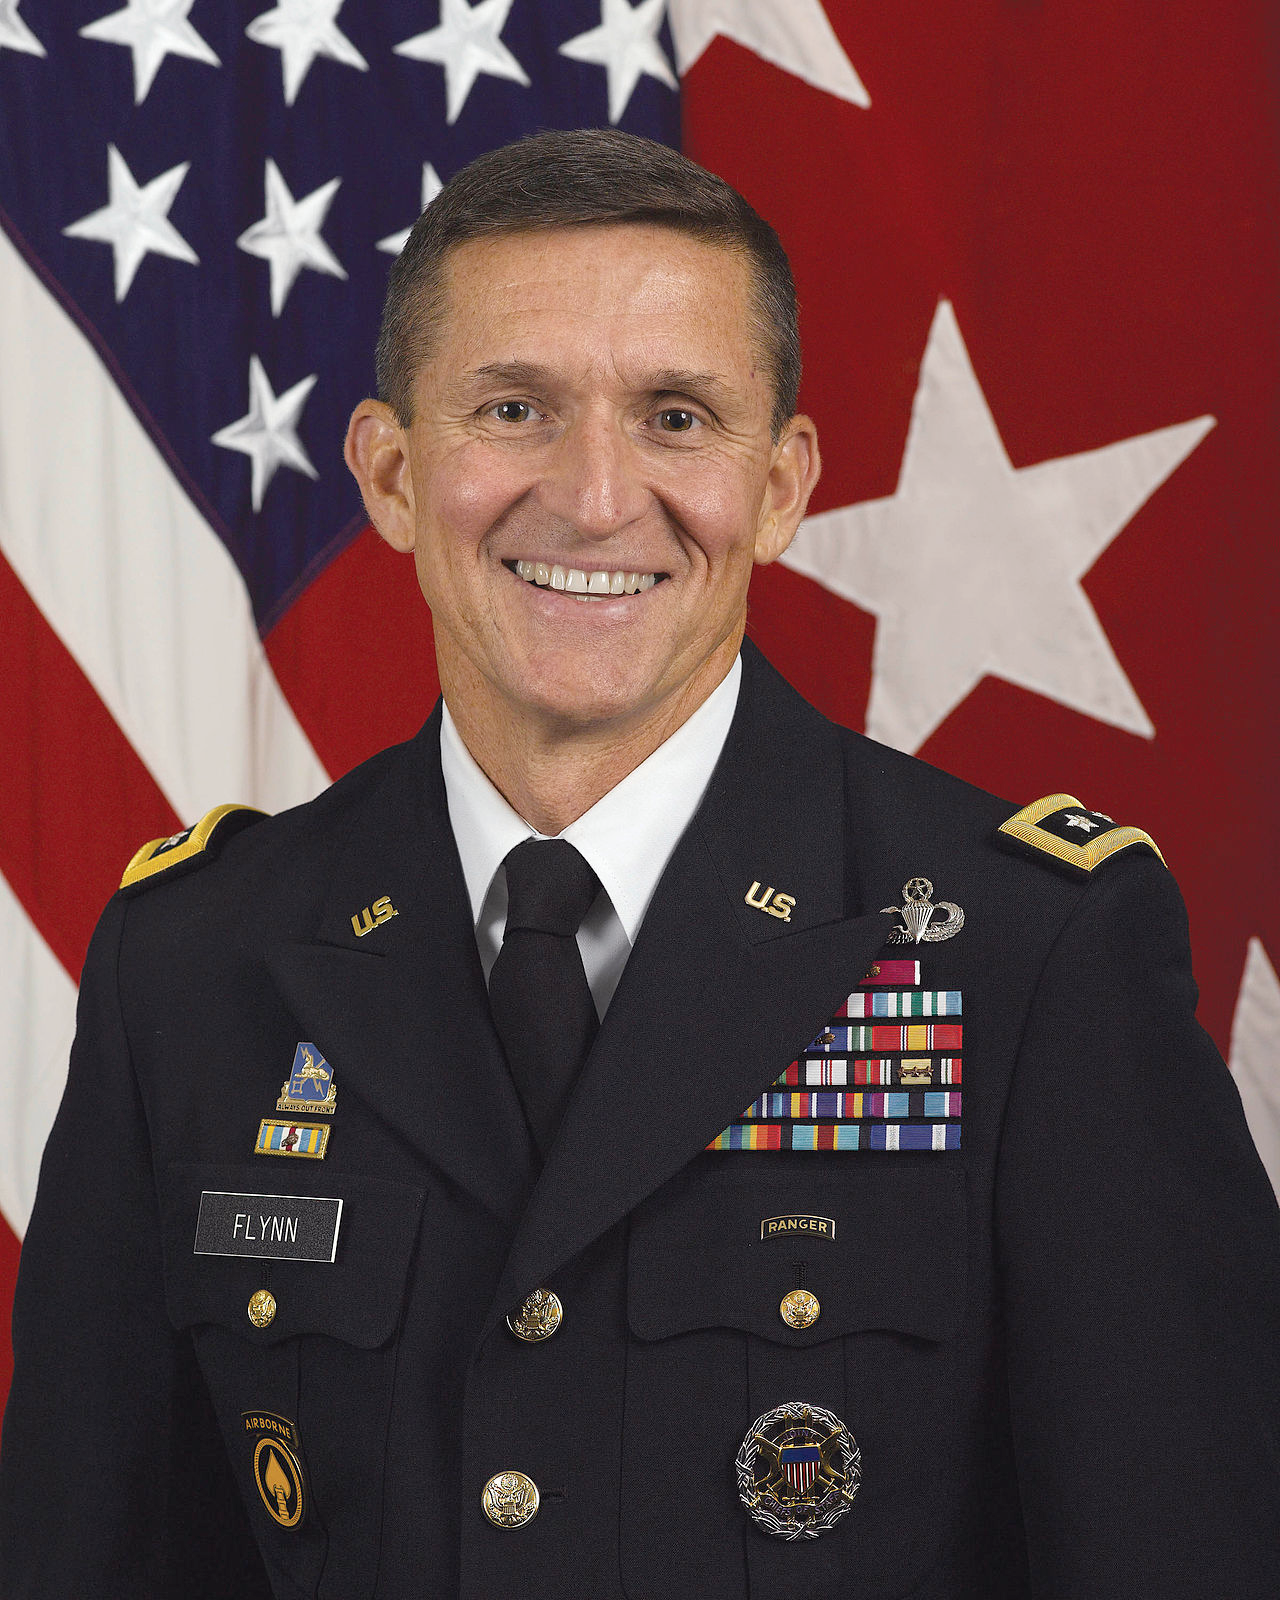 Mike Flynn: From The Fort: An Interview With LTG Mike Flynn